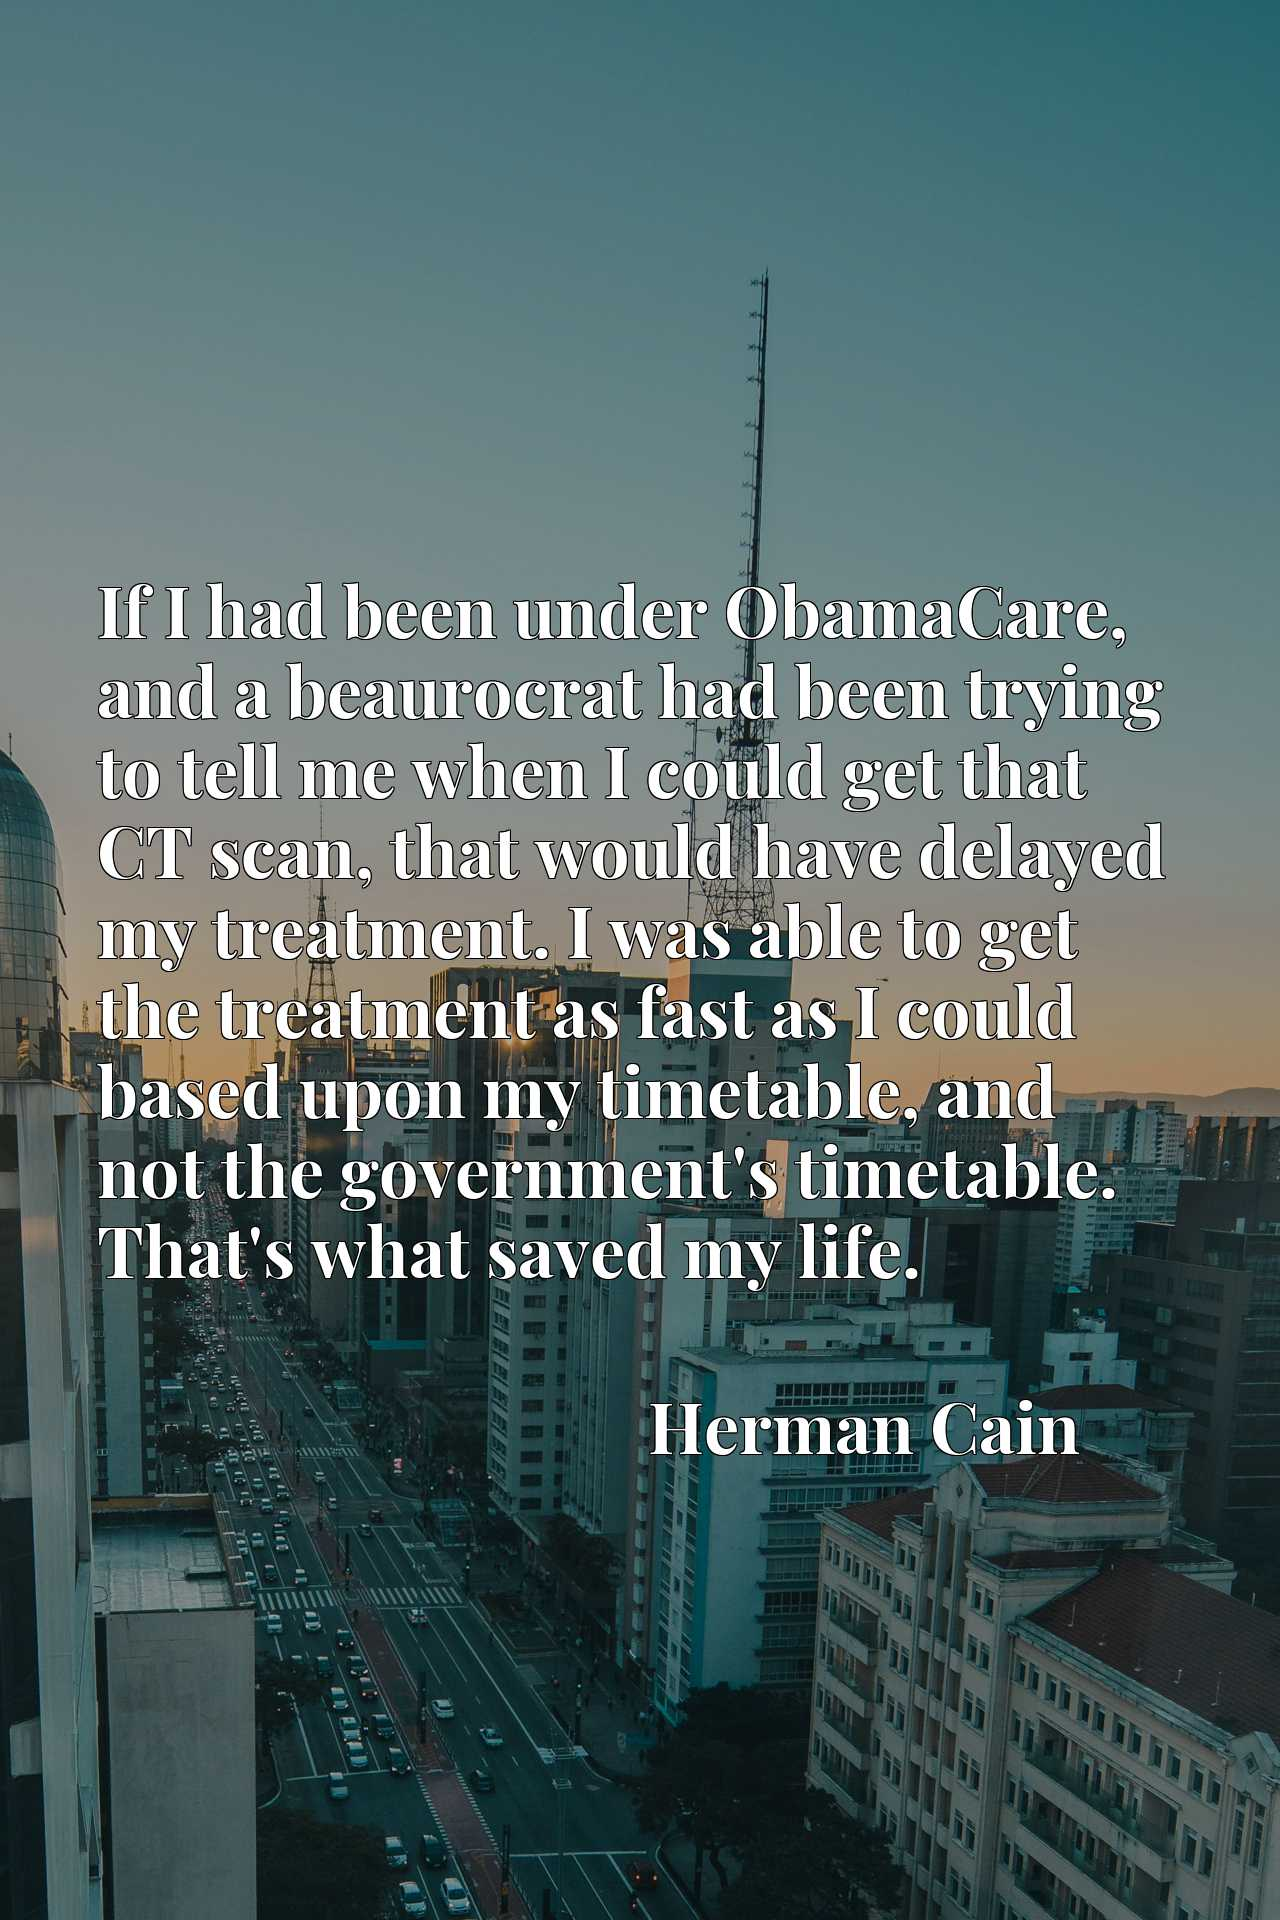 If I had been under ObamaCare, and a beaurocrat had been trying to tell me when I could get that CT scan, that would have delayed my treatment. I was able to get the treatment as fast as I could based upon my timetable, and not the government's timetable. That's what saved my life.